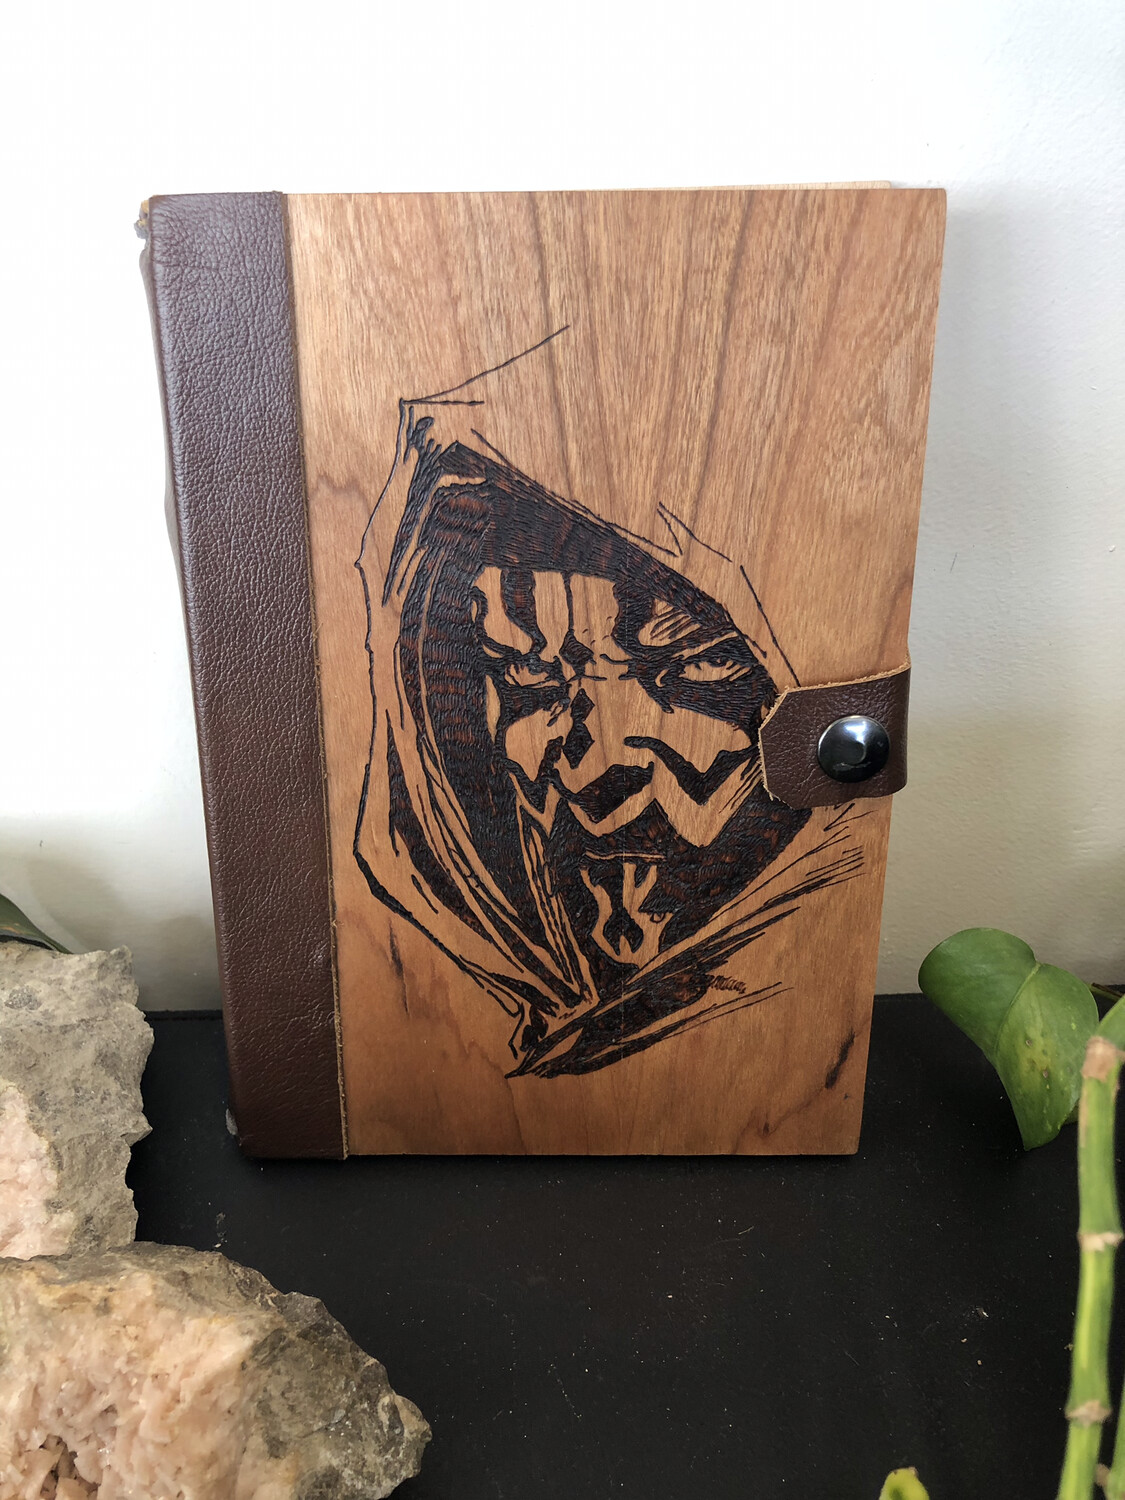 Sith Journal